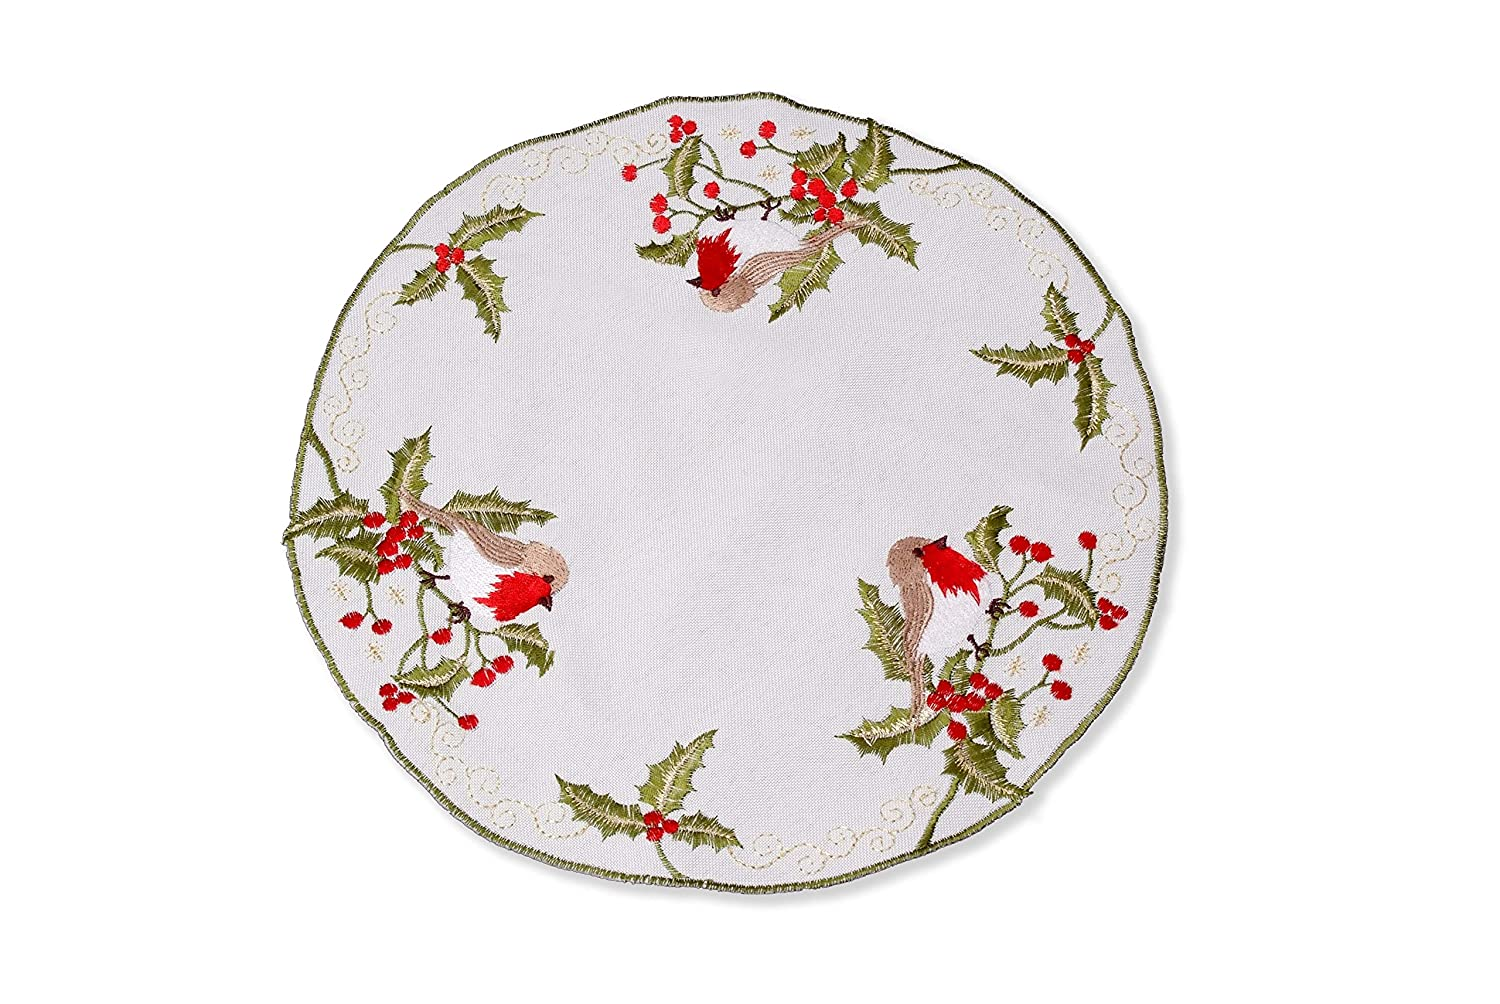 Christmas Robin Table Linen - Table Cloth, Table Runner, Doyley, Mantle Runner, Doyley or Coaster (Doyley 4.5